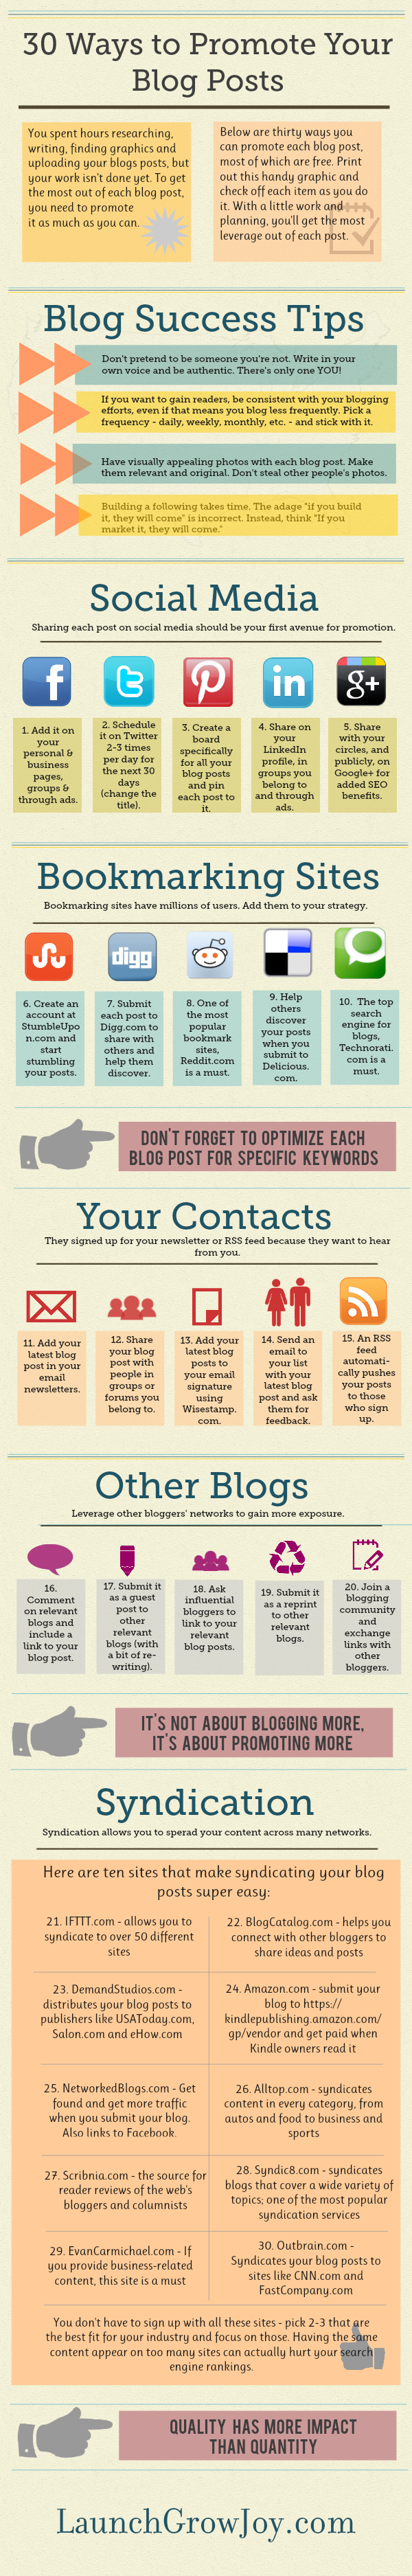 Promote-Your-Blog-Posts